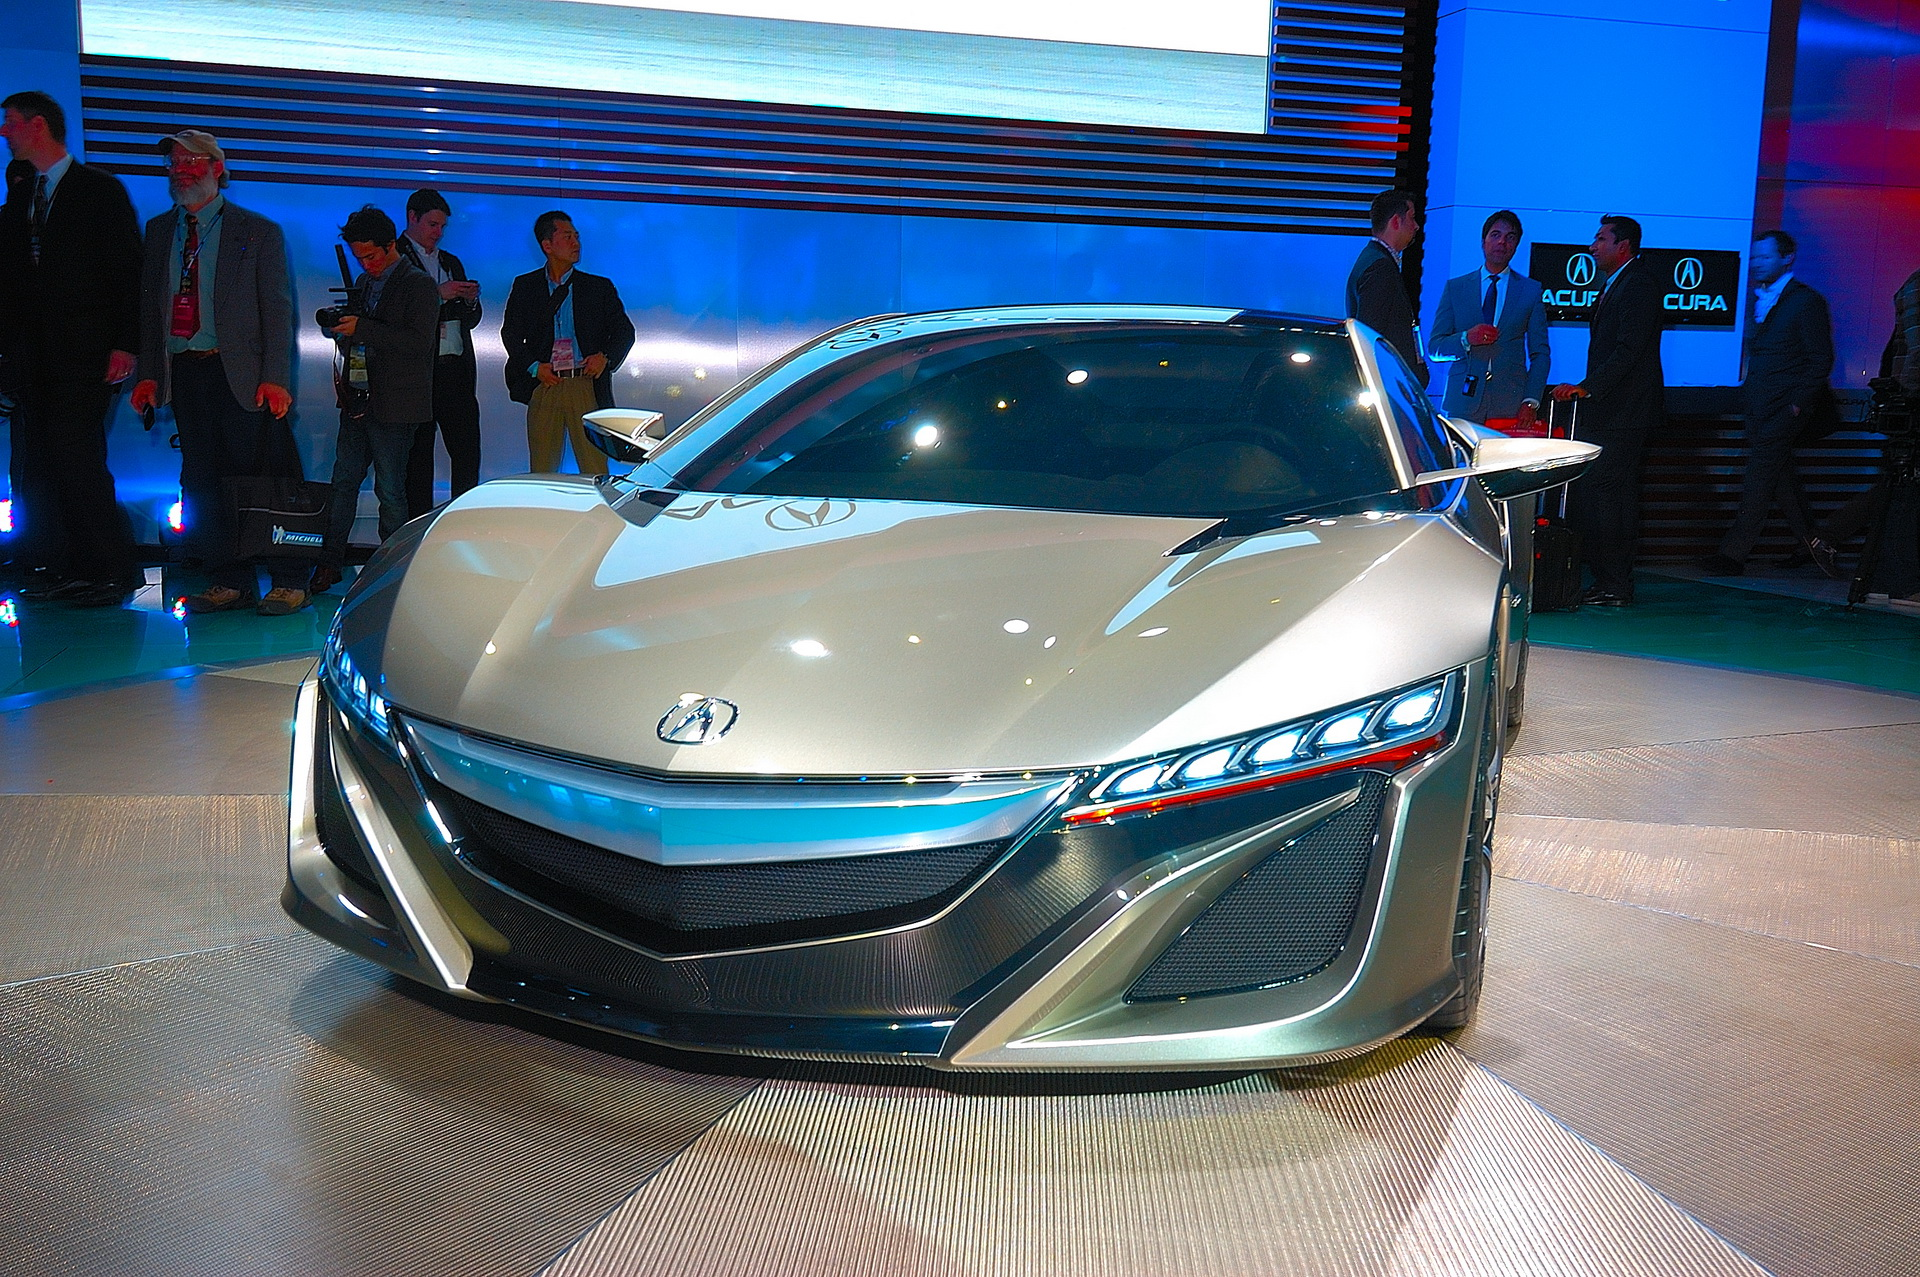 2012 Acura NSX Concept photo - 4